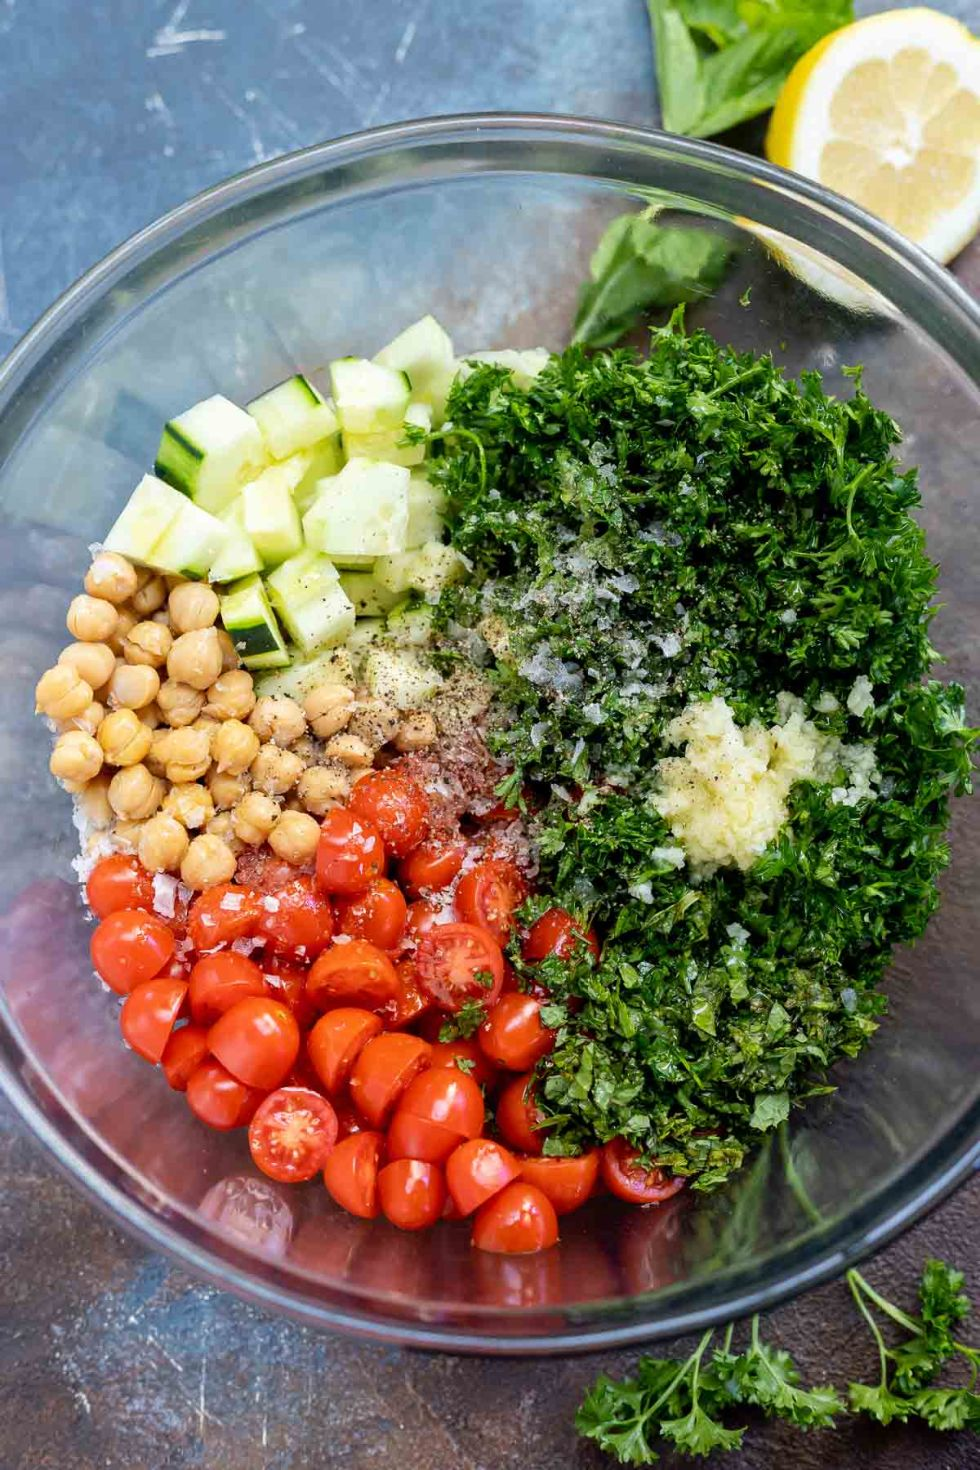 ingredients for garbanzo bean salad in clear glass bowl